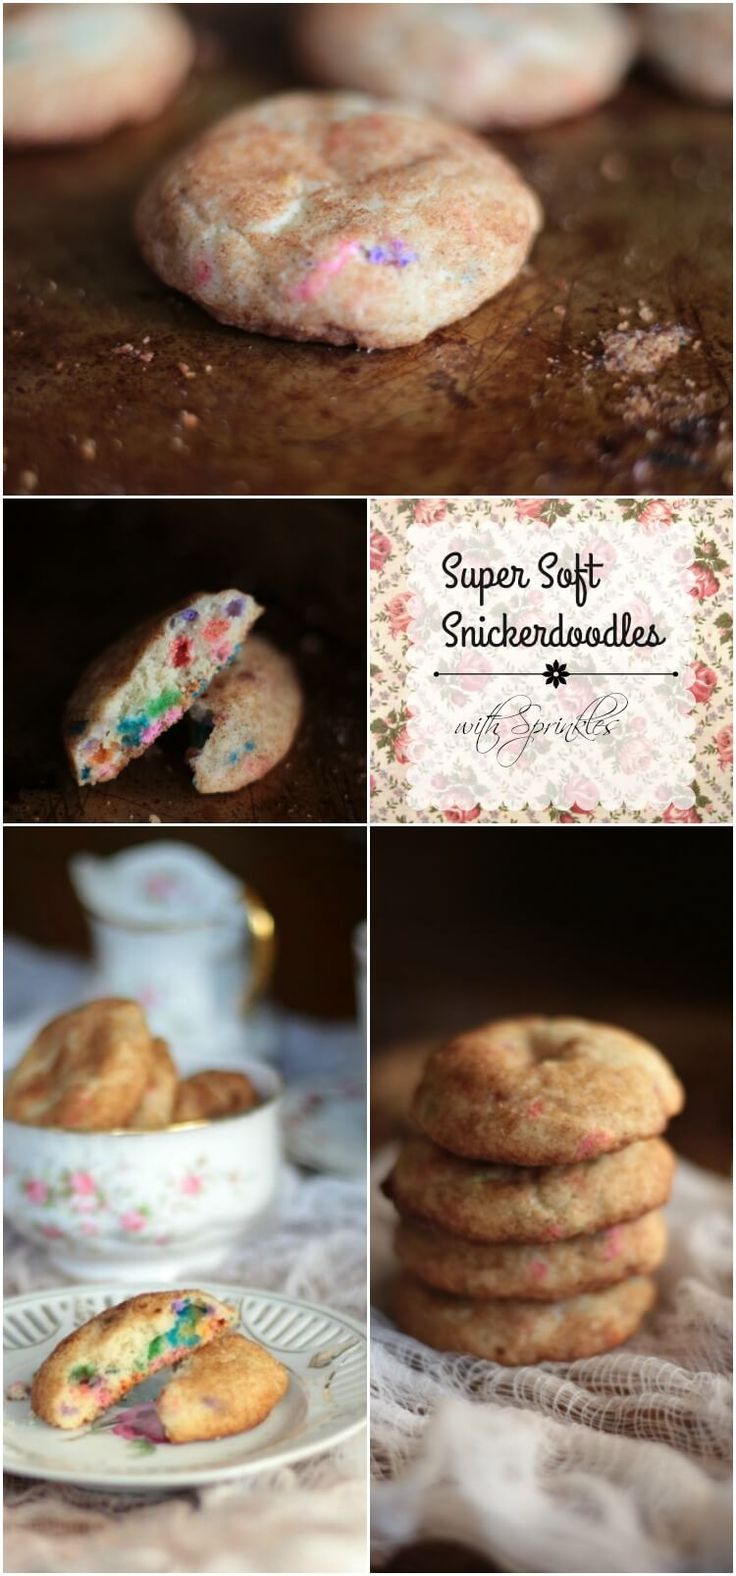 Best chewy, soft Snickerdoodle recipe ever! Sweet buttery goodness with tons of cinnamon flavor... plus sprinkles! From restlesschipotle.com